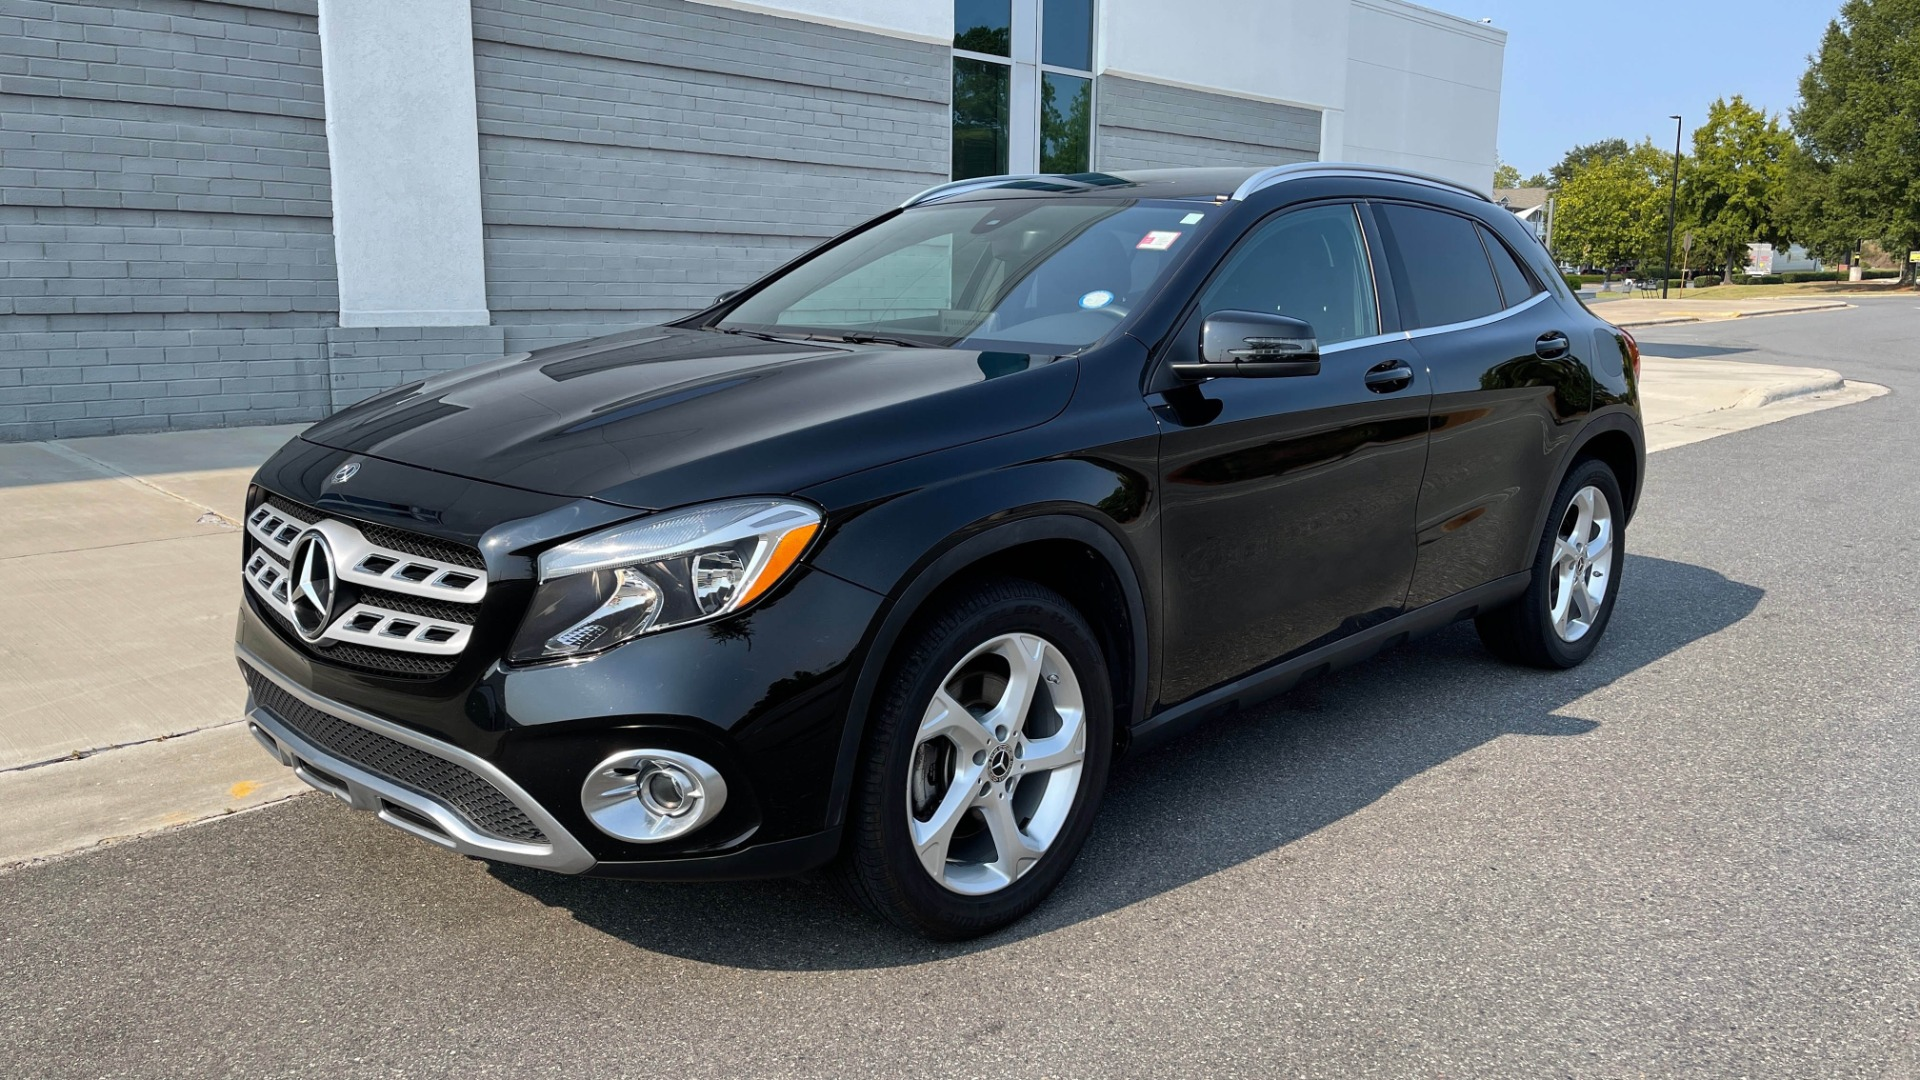 Used 2018 Mercedes-Benz GLA 250 SUV / GARMIN MAP PILOT / 18IN WHEELS / REARVIEW for sale $26,995 at Formula Imports in Charlotte NC 28227 1